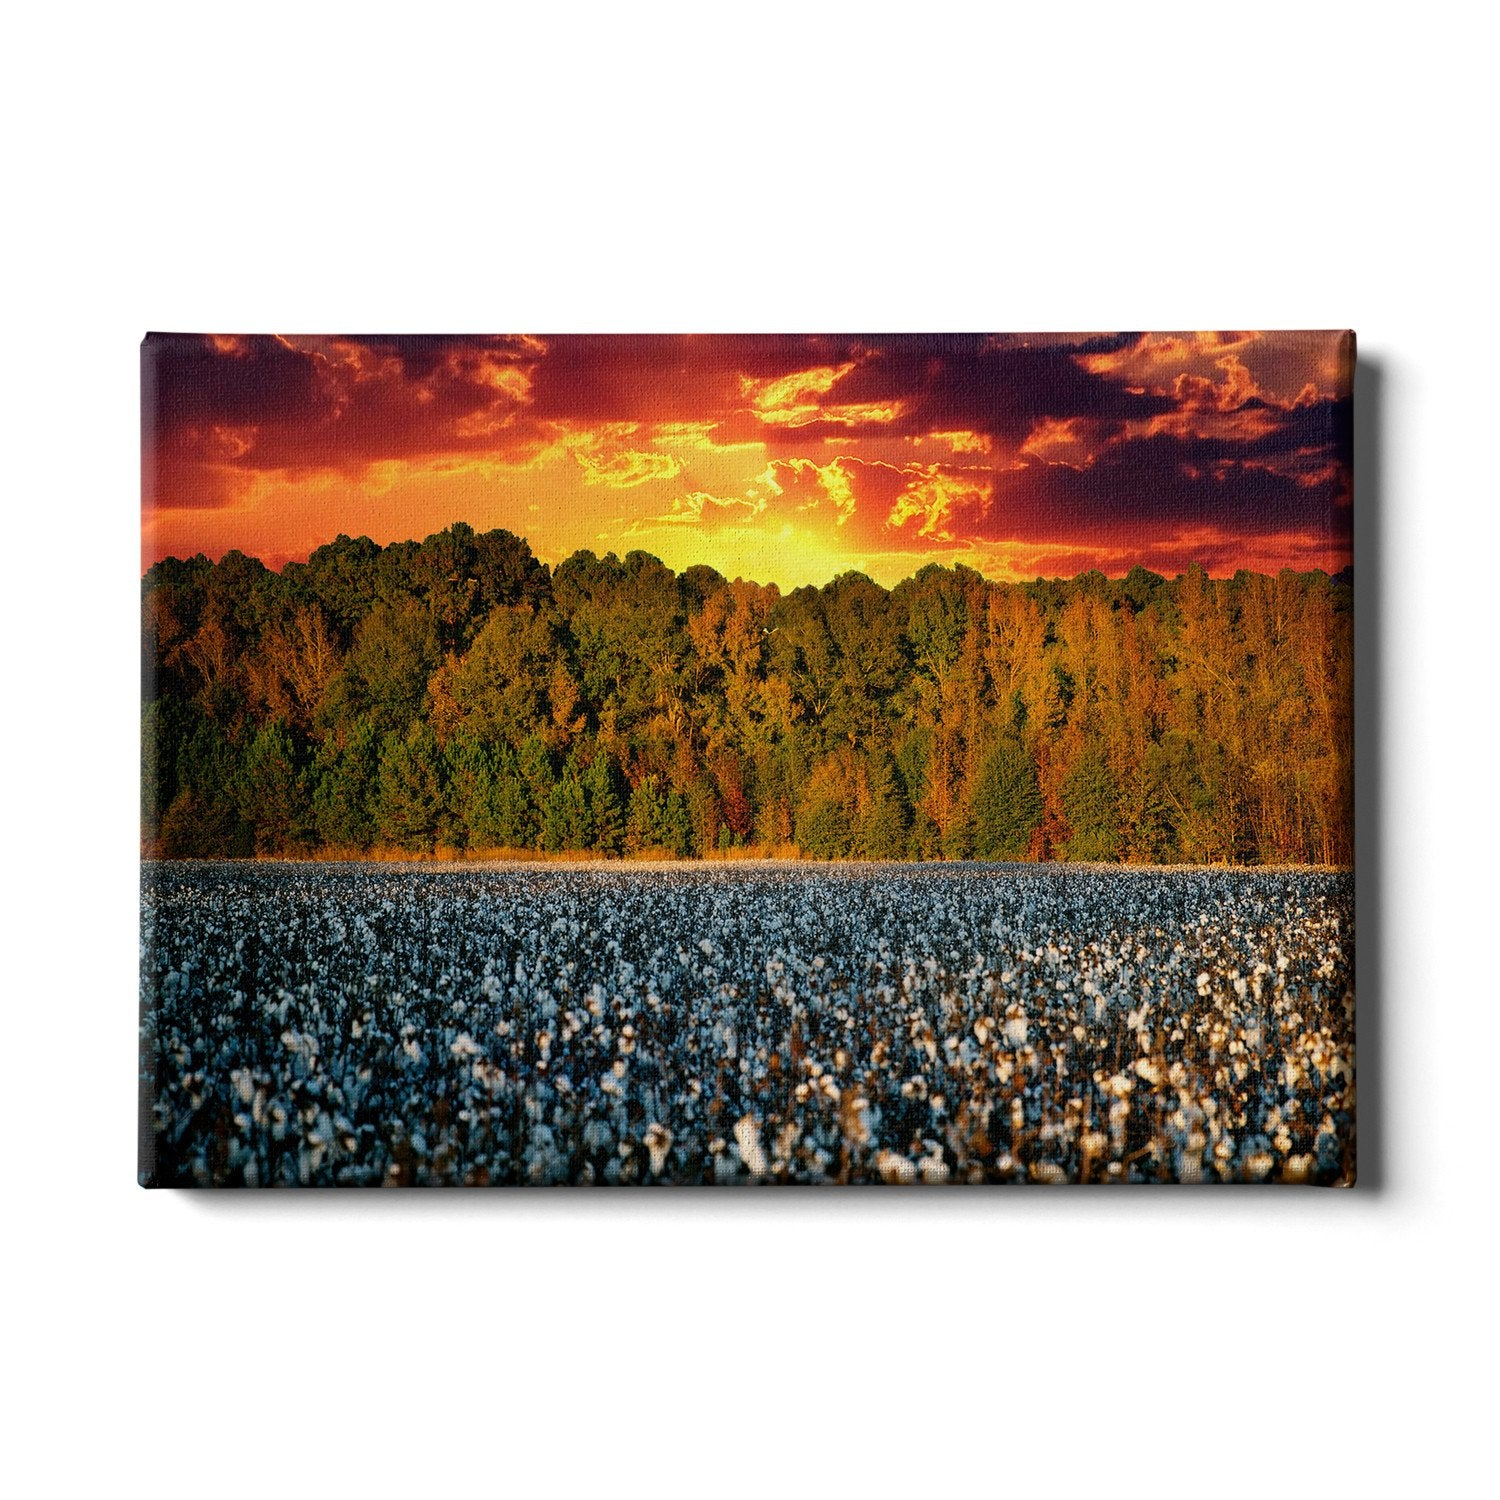 Cotton Field -College Wall Art #Canvas